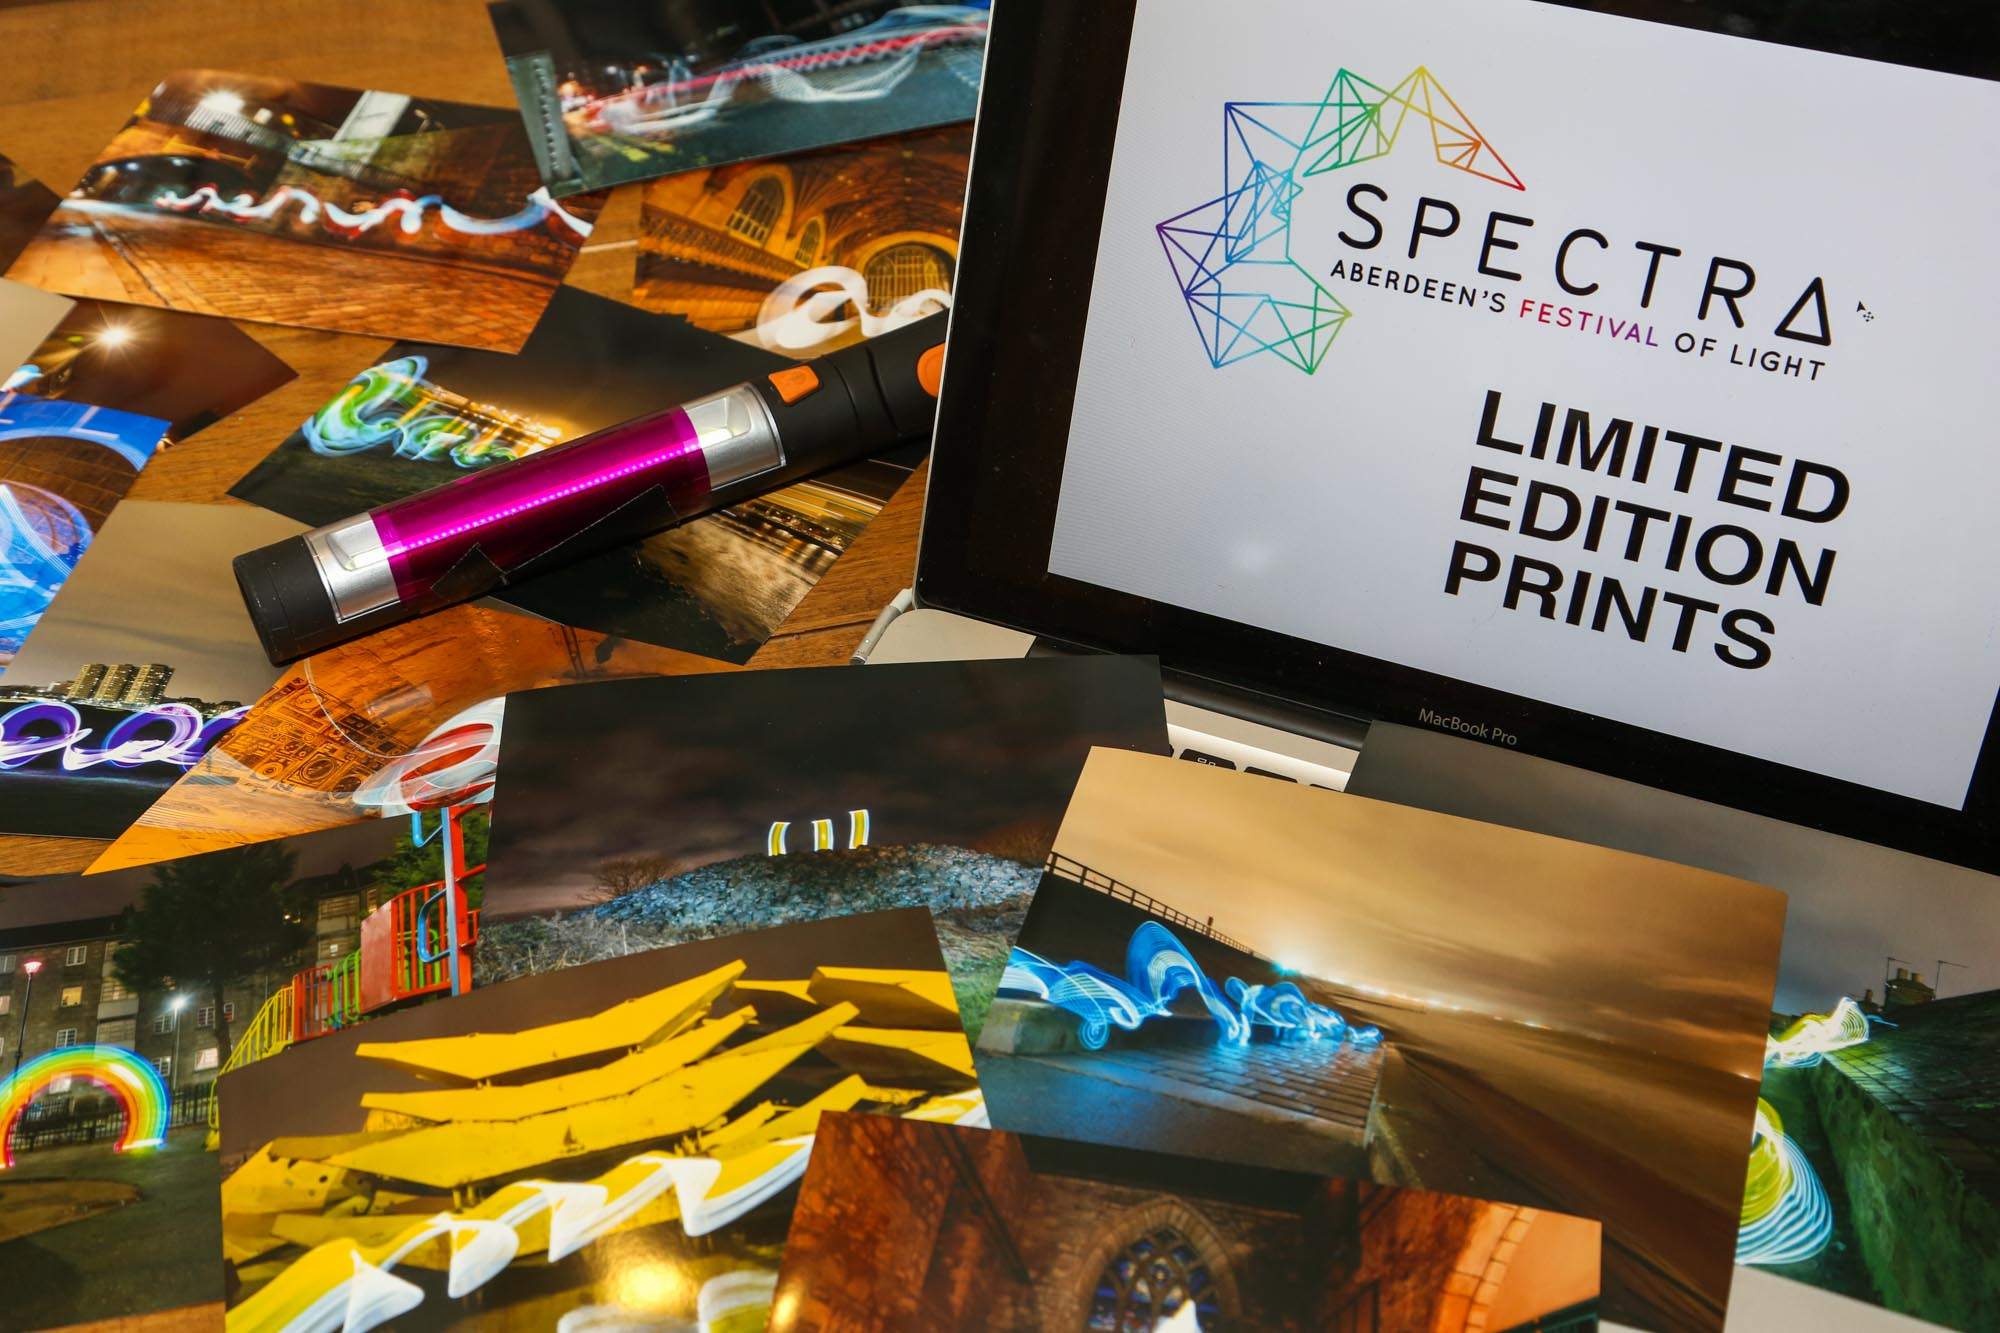 SPECTRA Festival Limited edition Prints by Sola